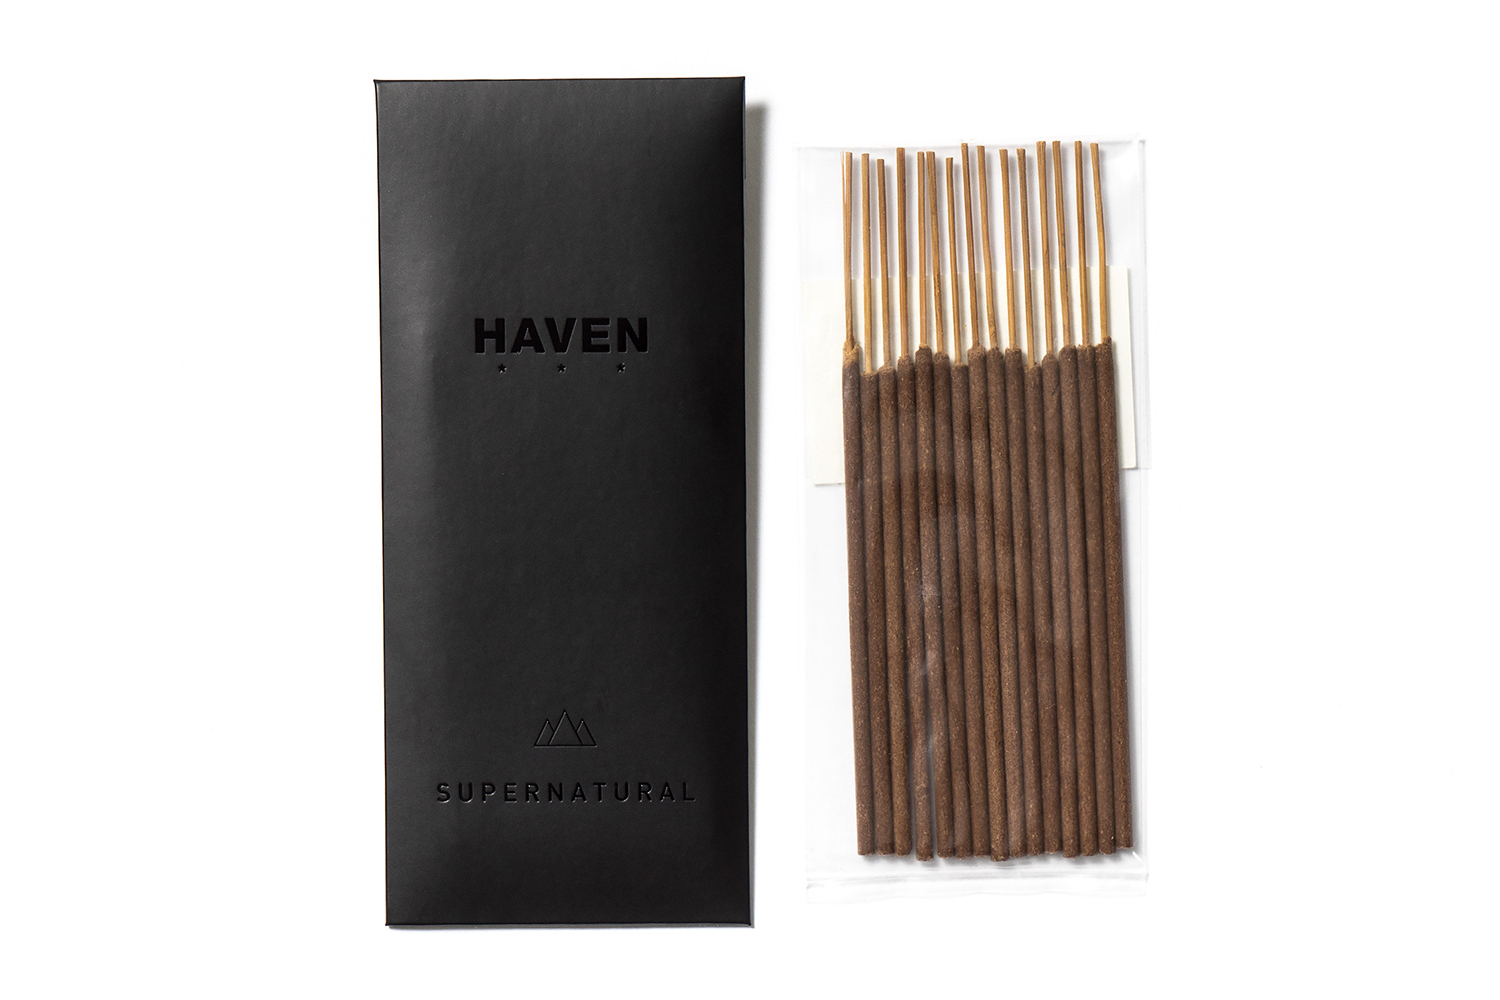 Kuumba Offers up an Exclusive Incense at HAVEN